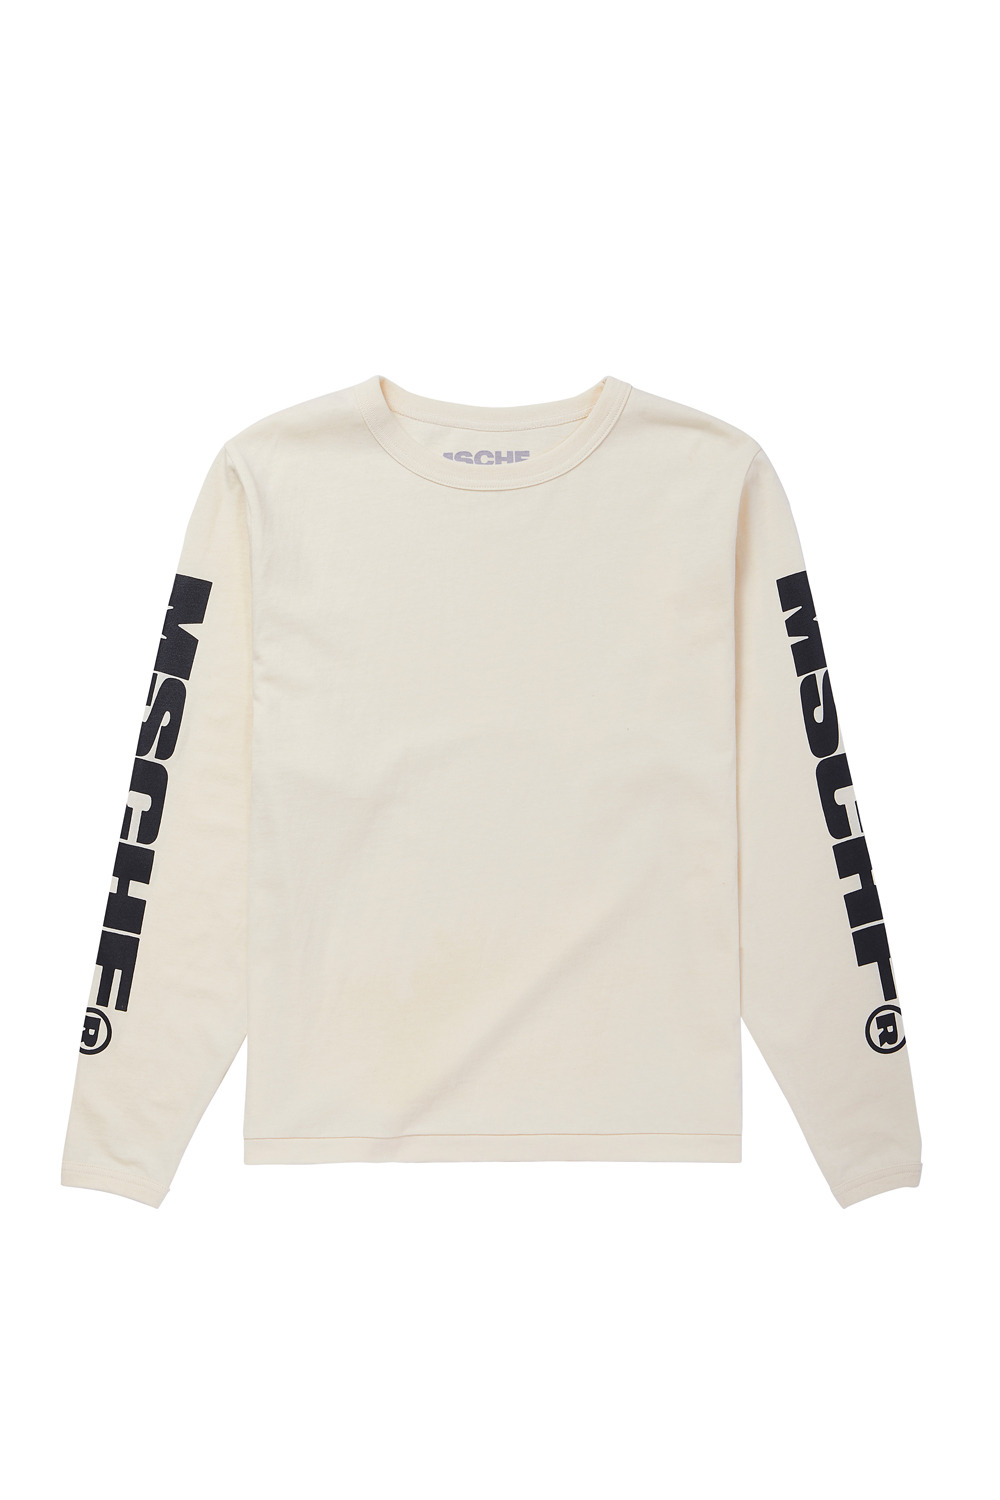 MSCHF LONG SLEEVE_cream